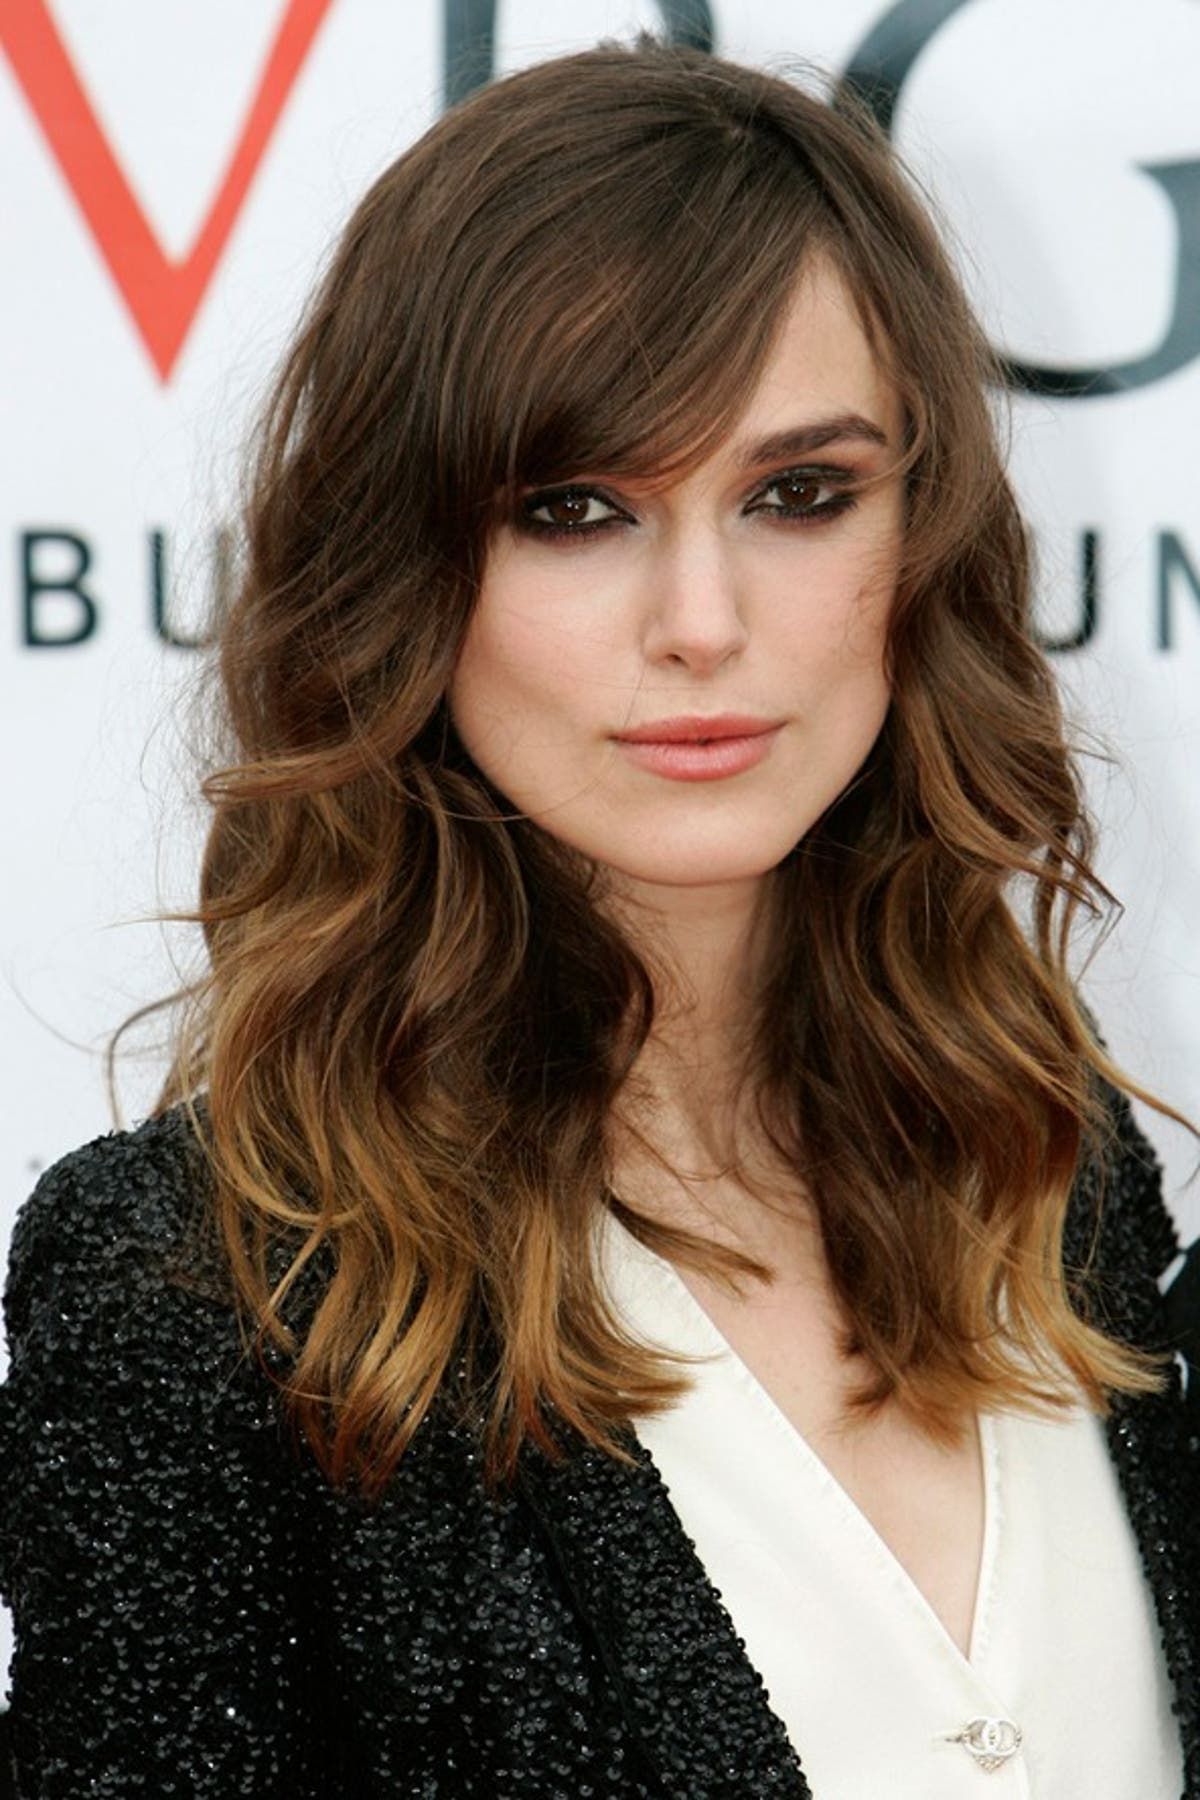 The Best & Worst Hairstyles (With Bangs) For A Square Face Shape